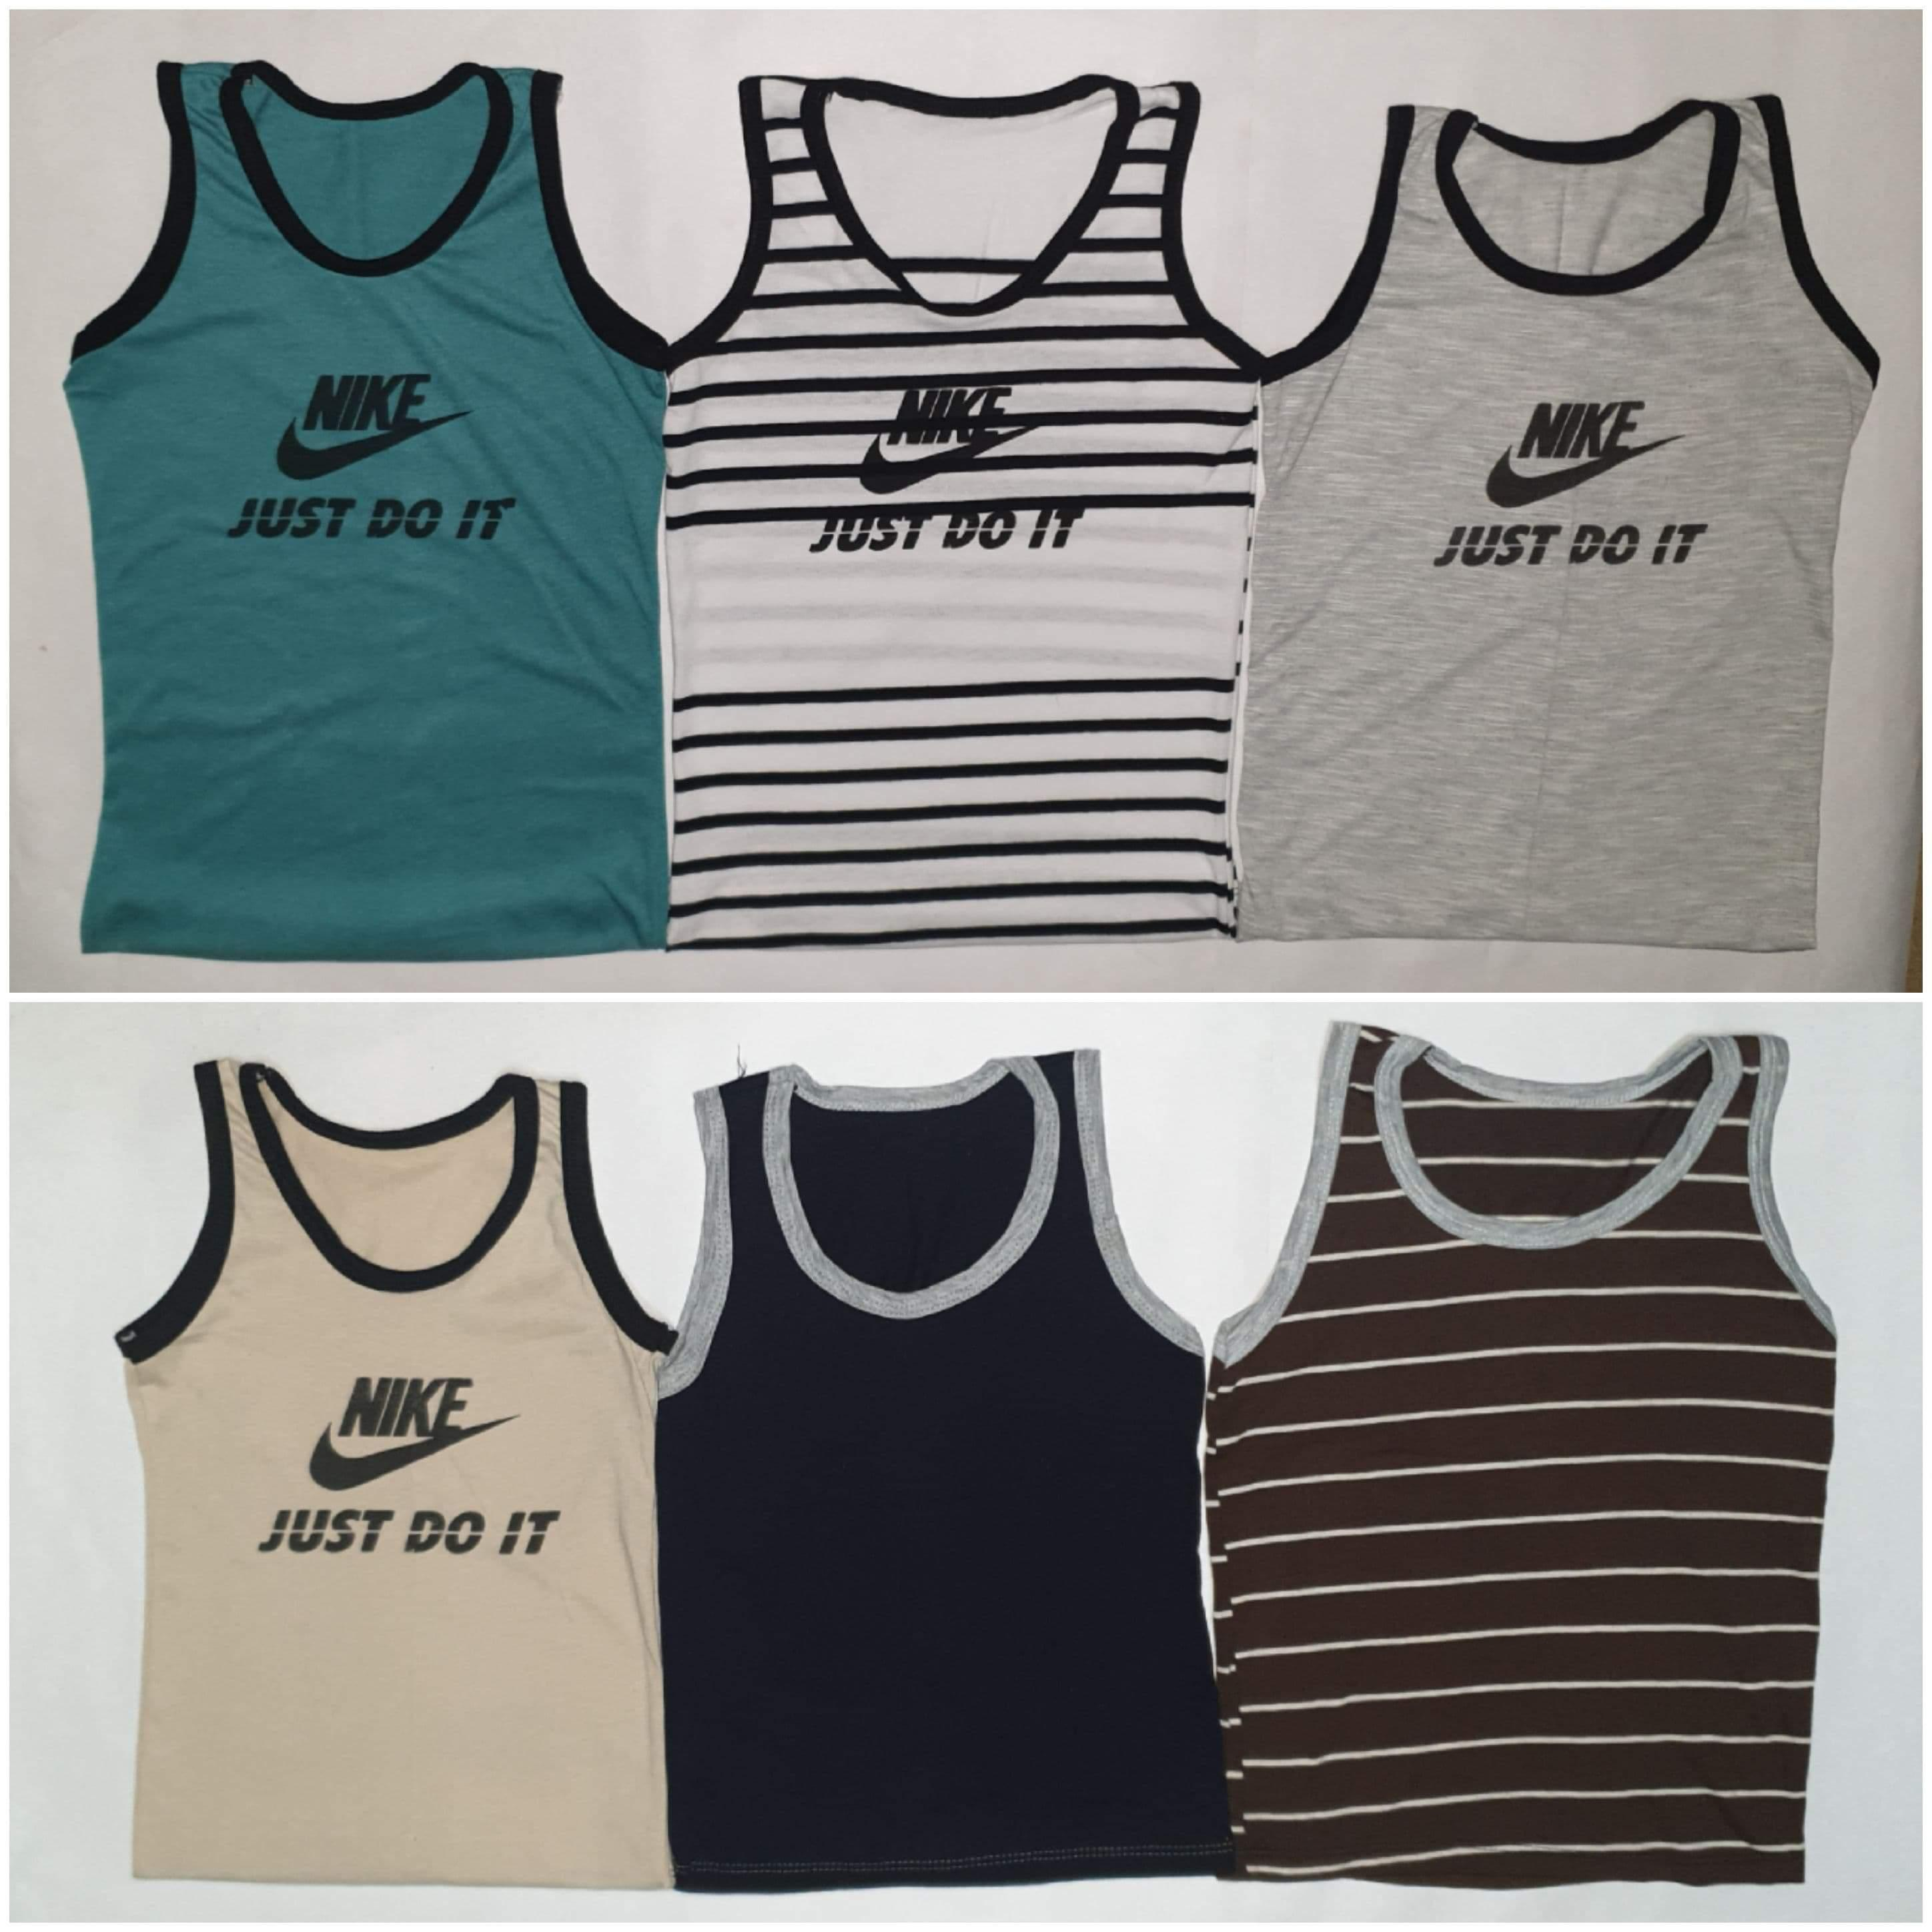 75c5d67dd Boys Shirts for sale - T-Shirts for Boys Online Deals & Prices in ...